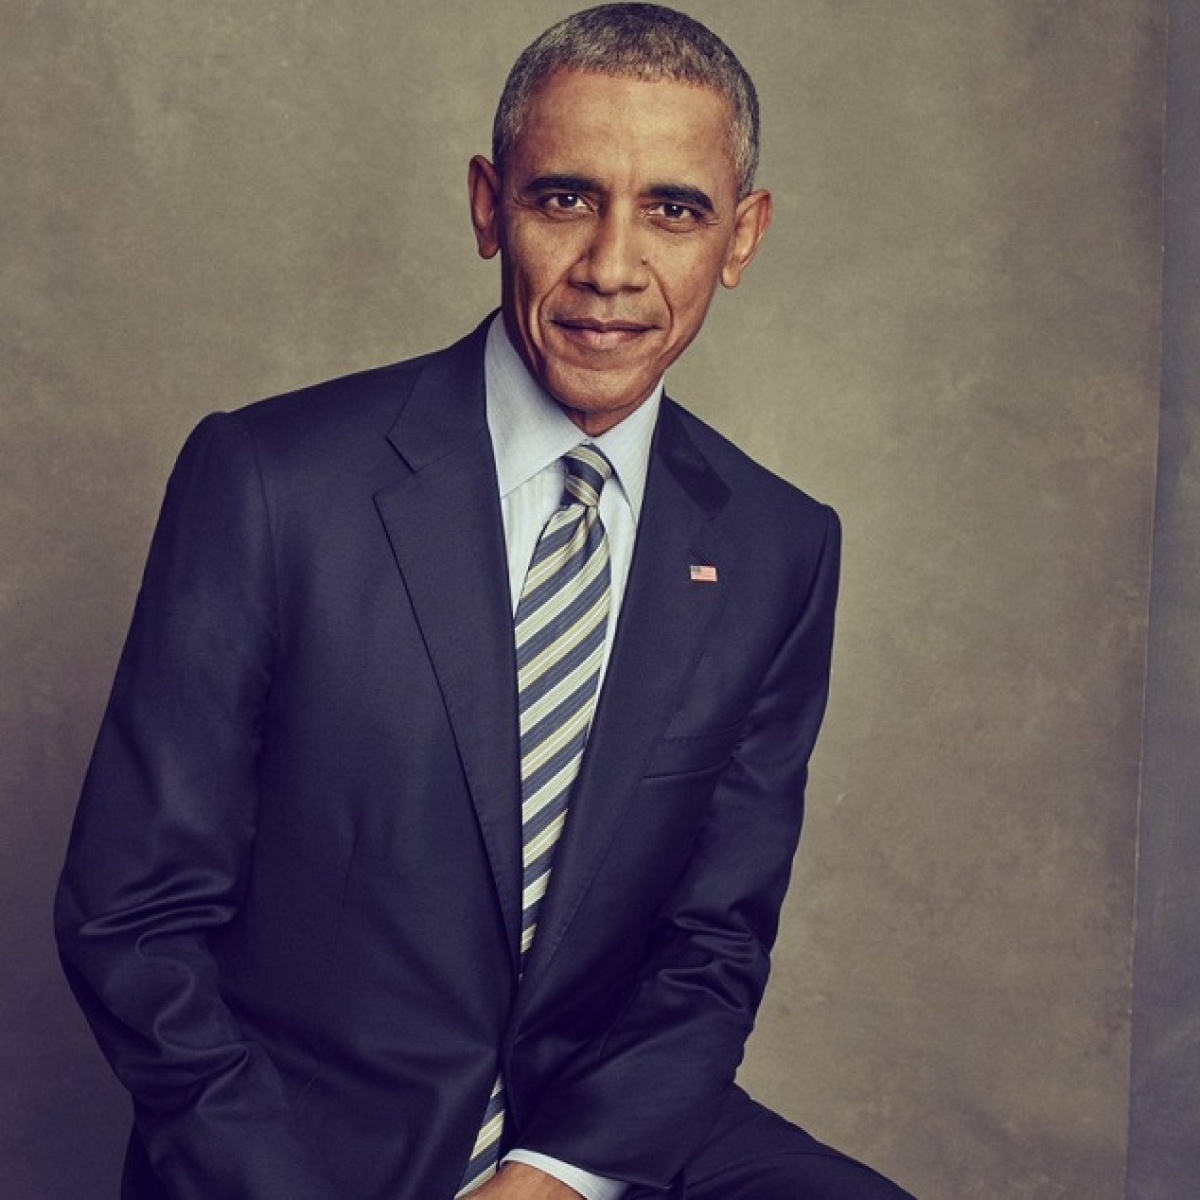 A Promised Land review: A candid glimpse of Barack Obama's personal and political life